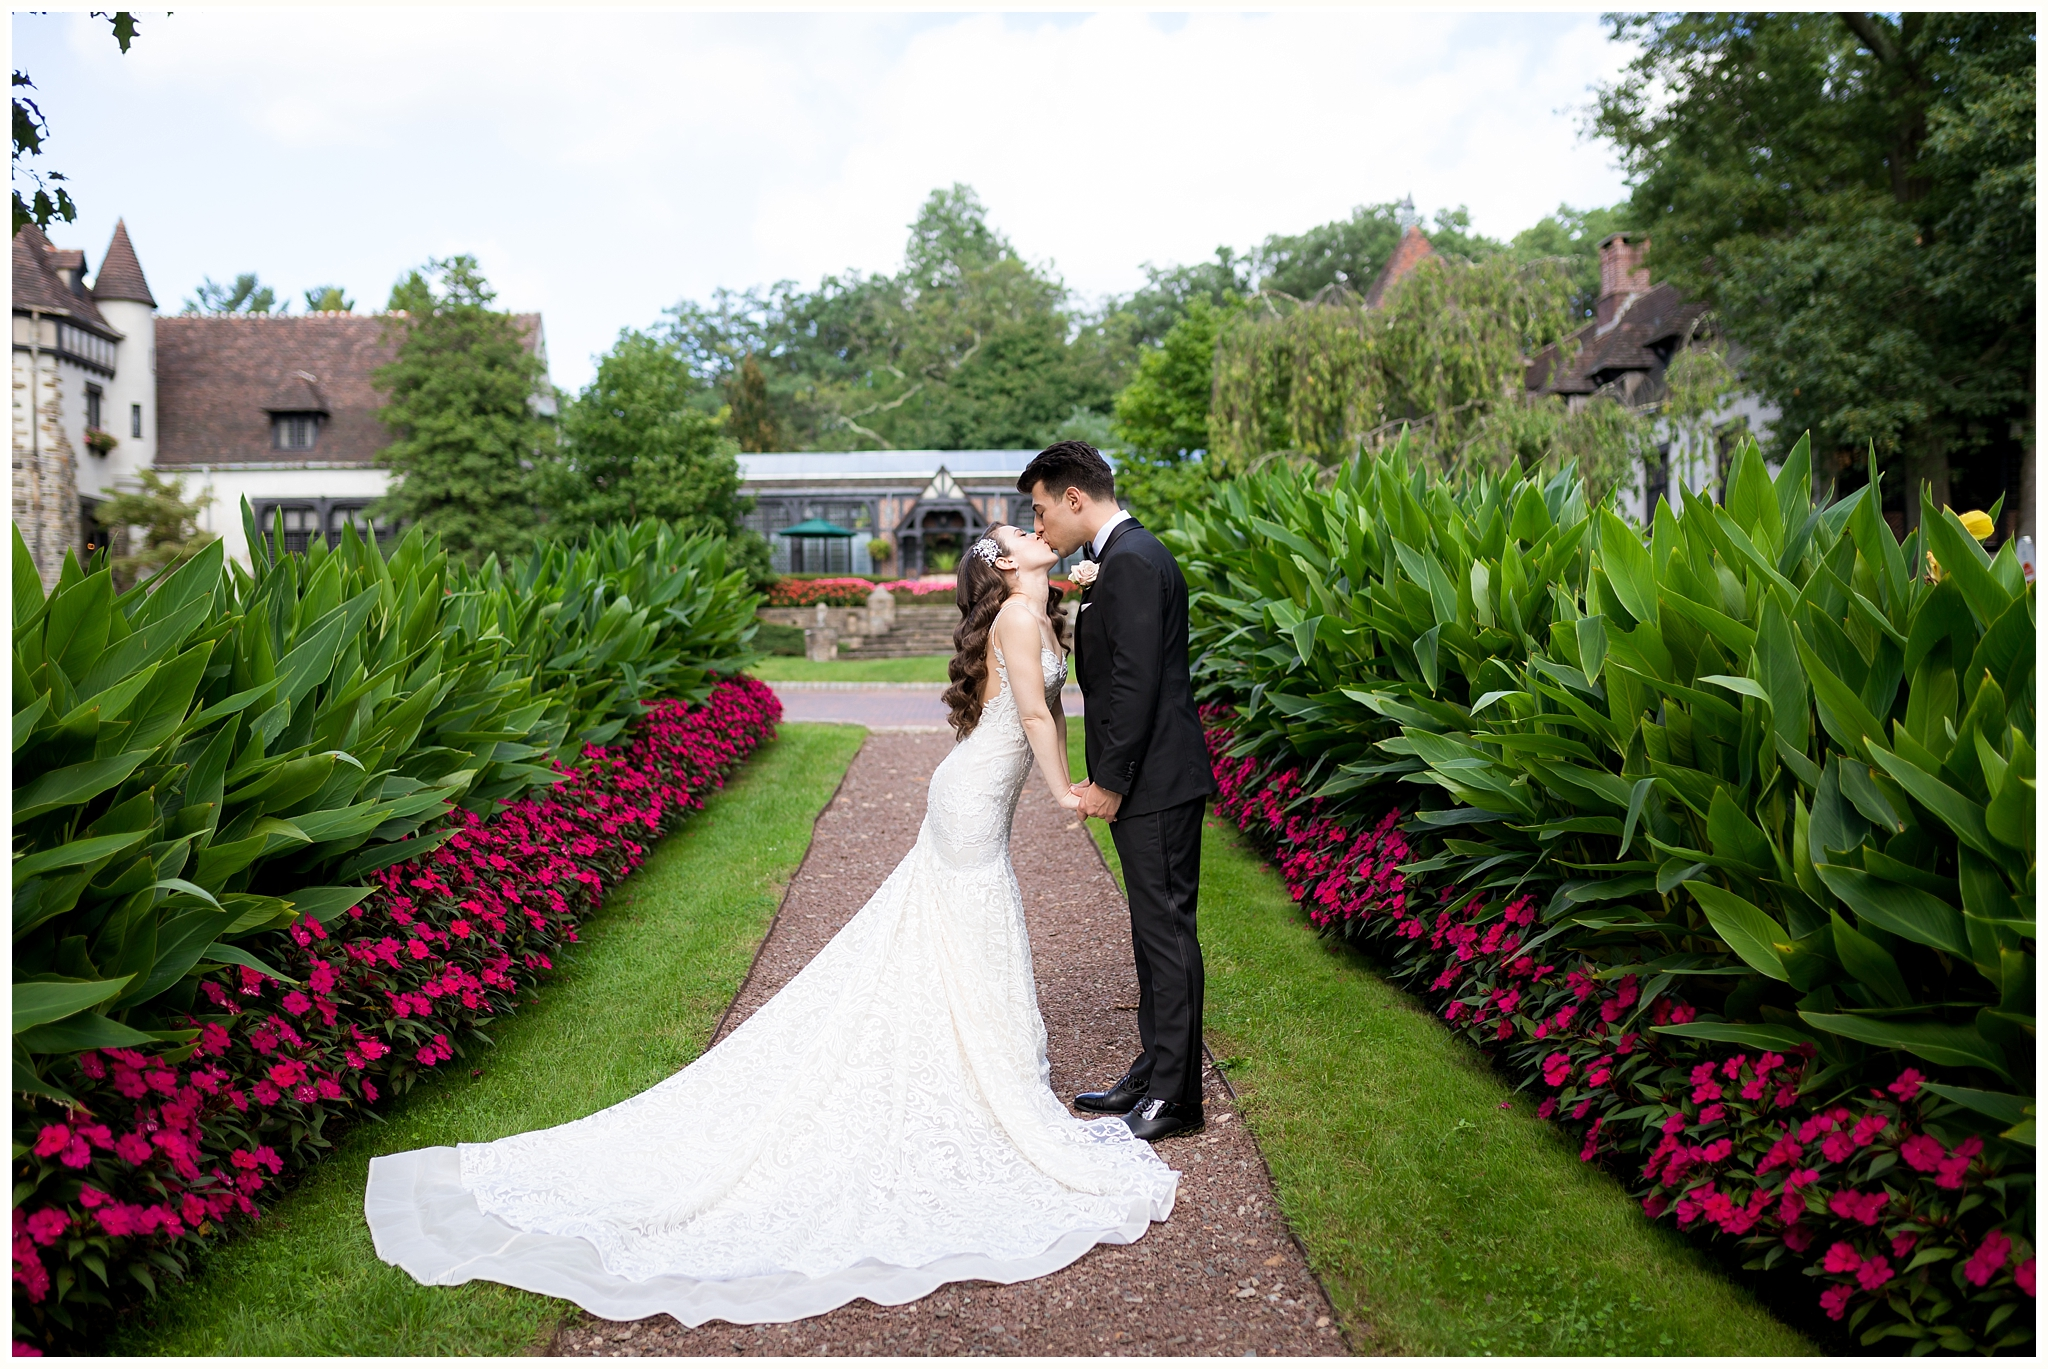 Pleasantdale Chateau Wedding NJ Wedding NYC Wedding Photographer_0014.jpg